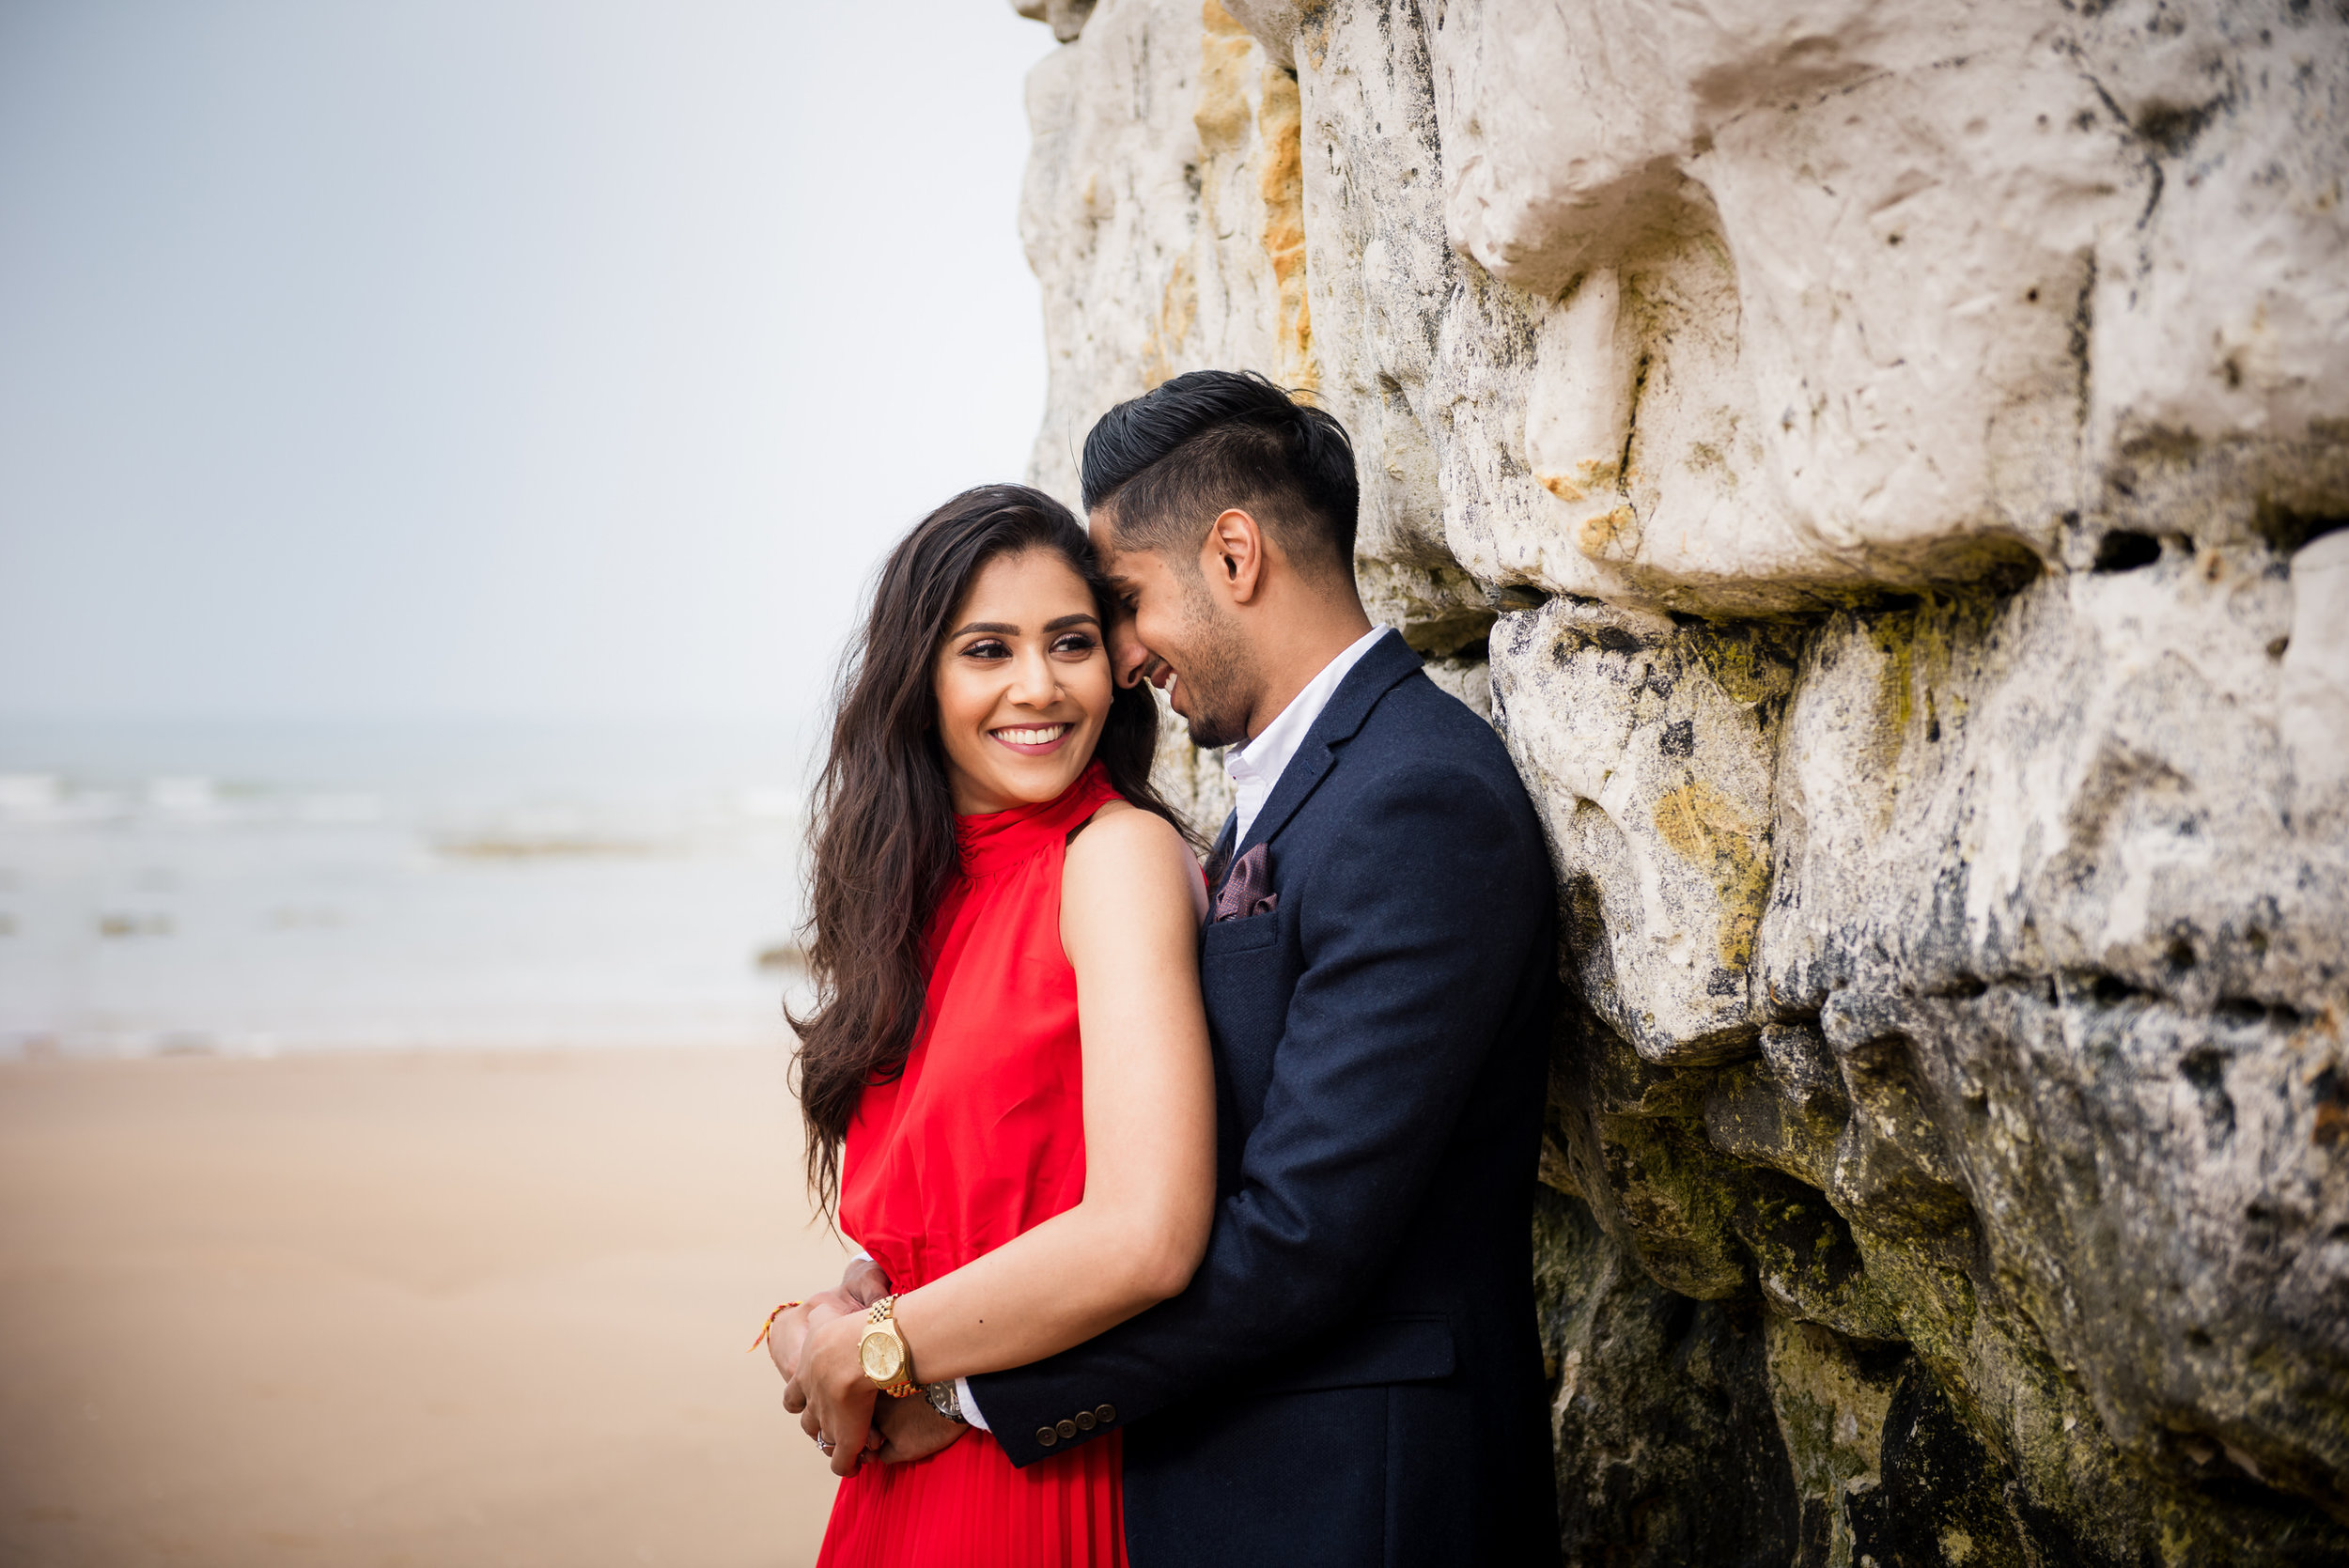 R&F_prewed_0041_edit.jpg